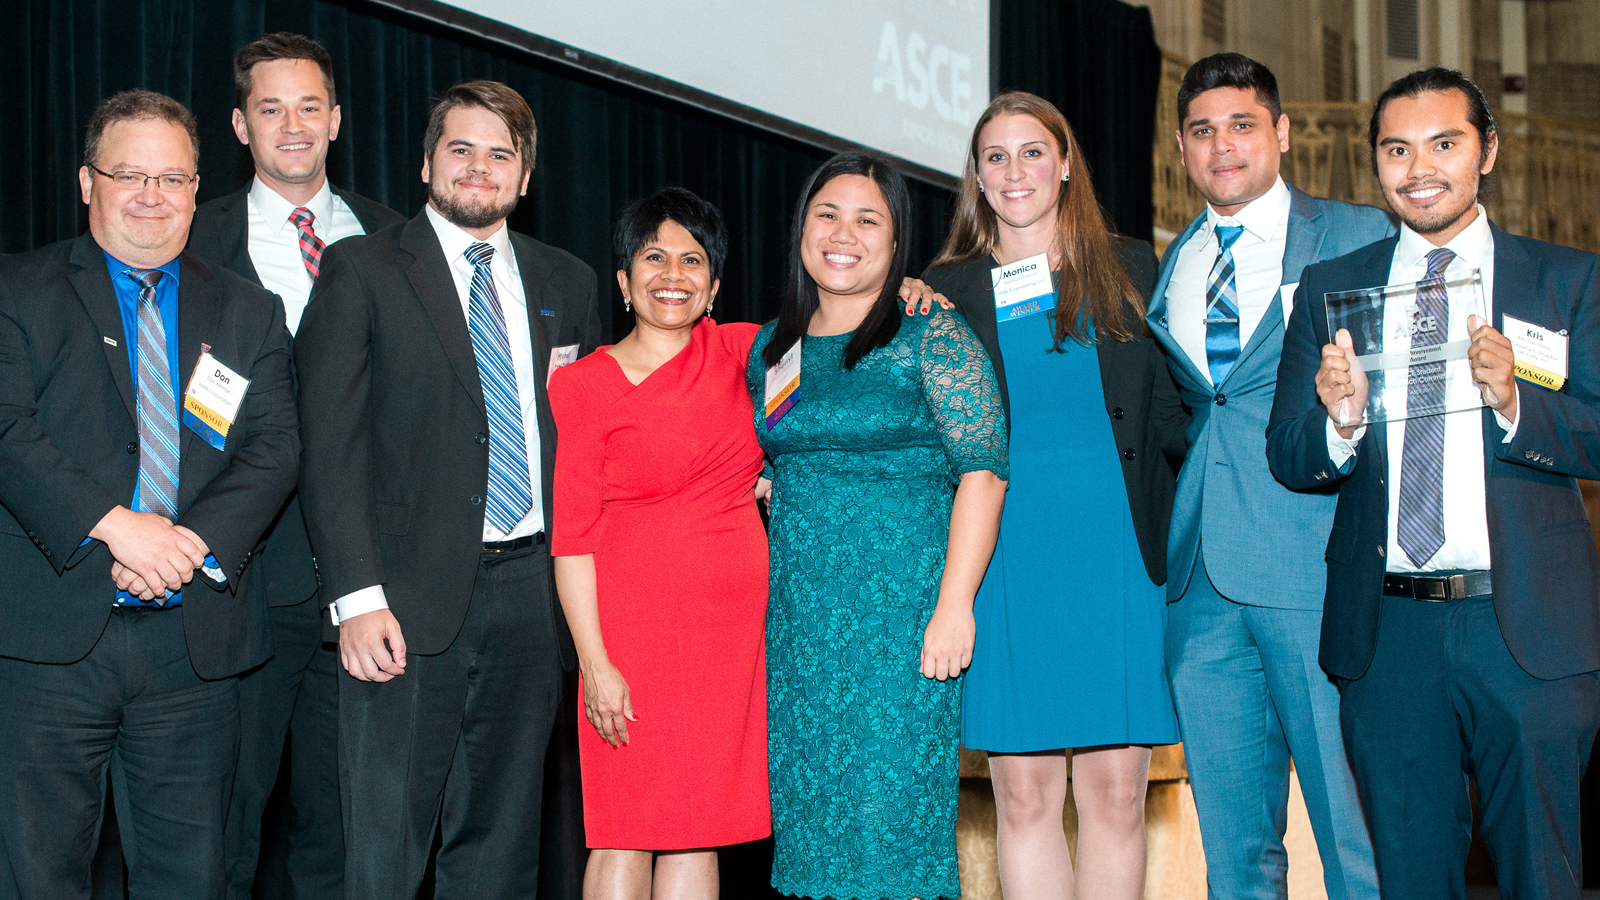 ASCE Illinois Student Outreach Committee Group Shot